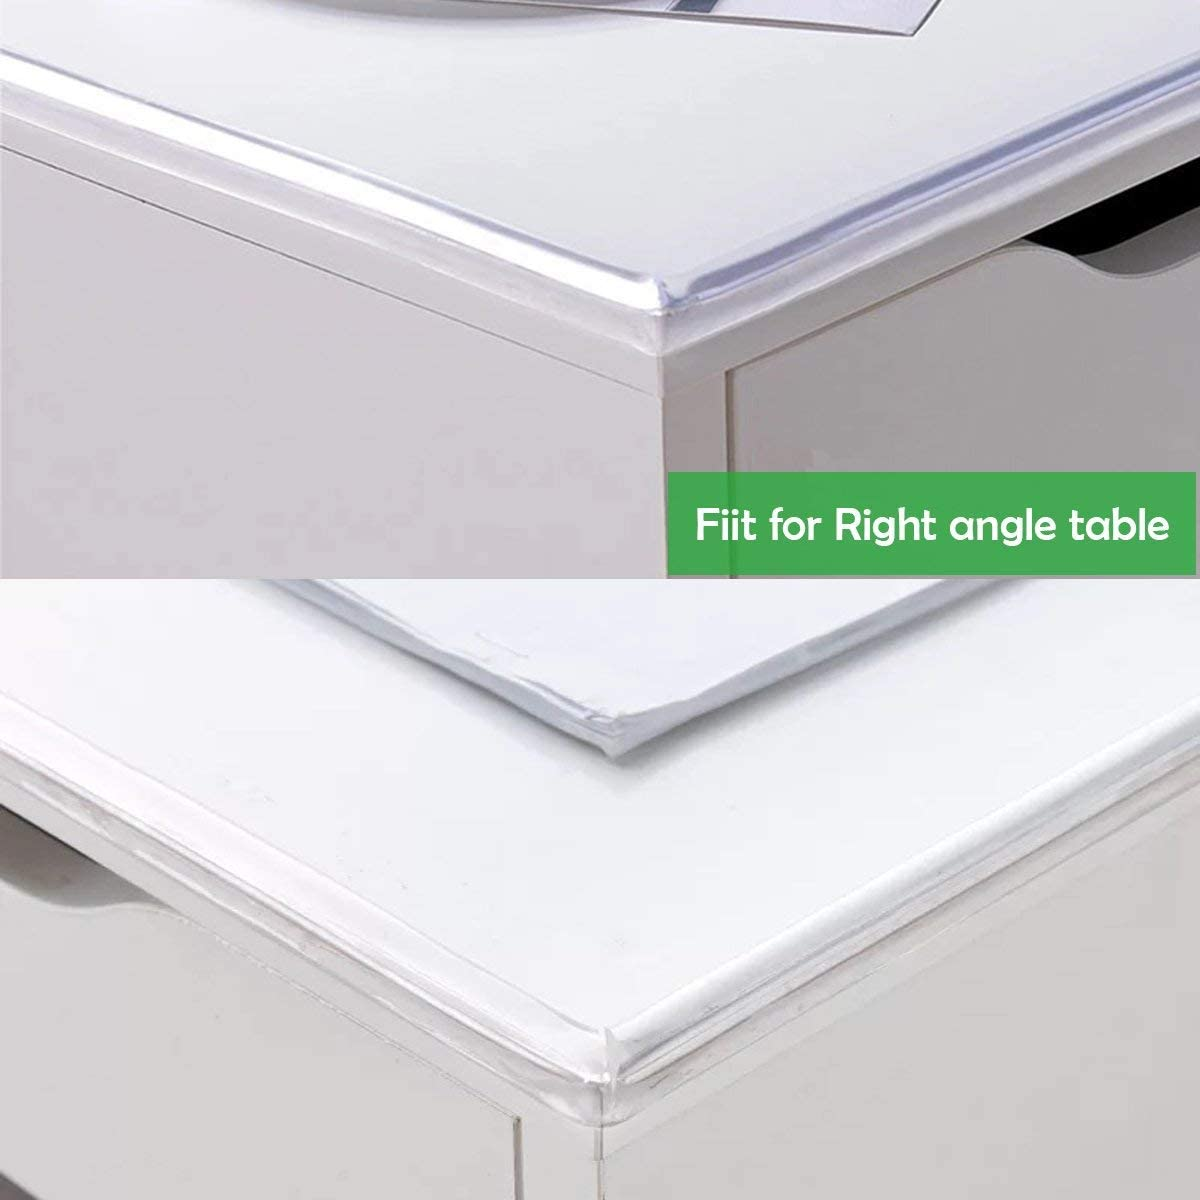 for Cabinets Drawers,Household 20ft Widen /& Thicken Baby Proofing Edge Safety Bumpers Strip Wemk New Transparent Table Edge Furniture Corner Protectors Safety for Child